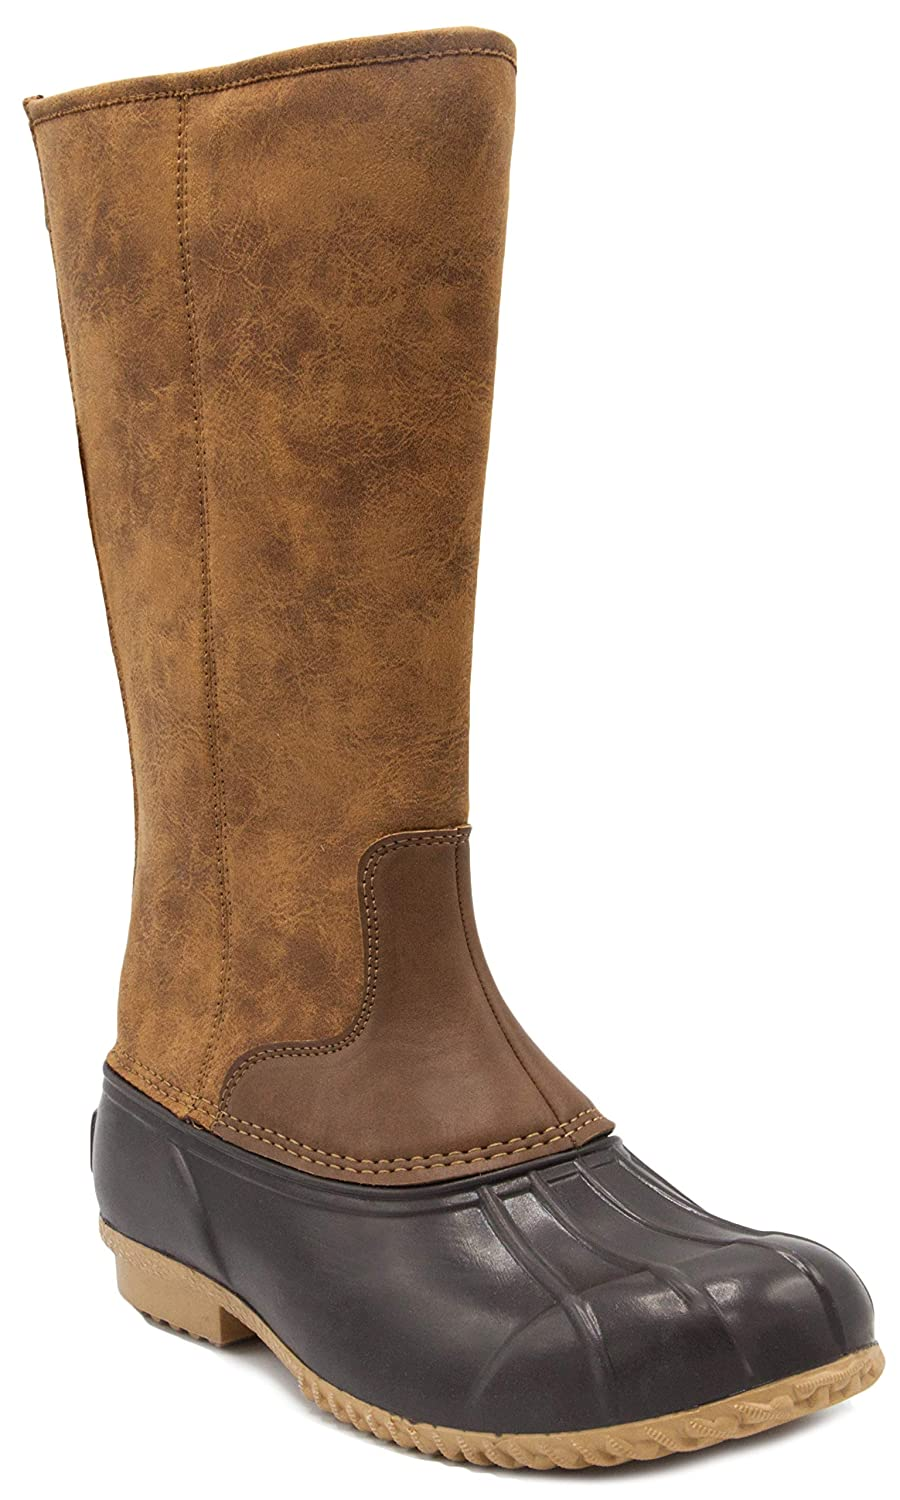 London Fog Womens Whitley Cold Weather Tall Duck Boot LFW-WHITLEY